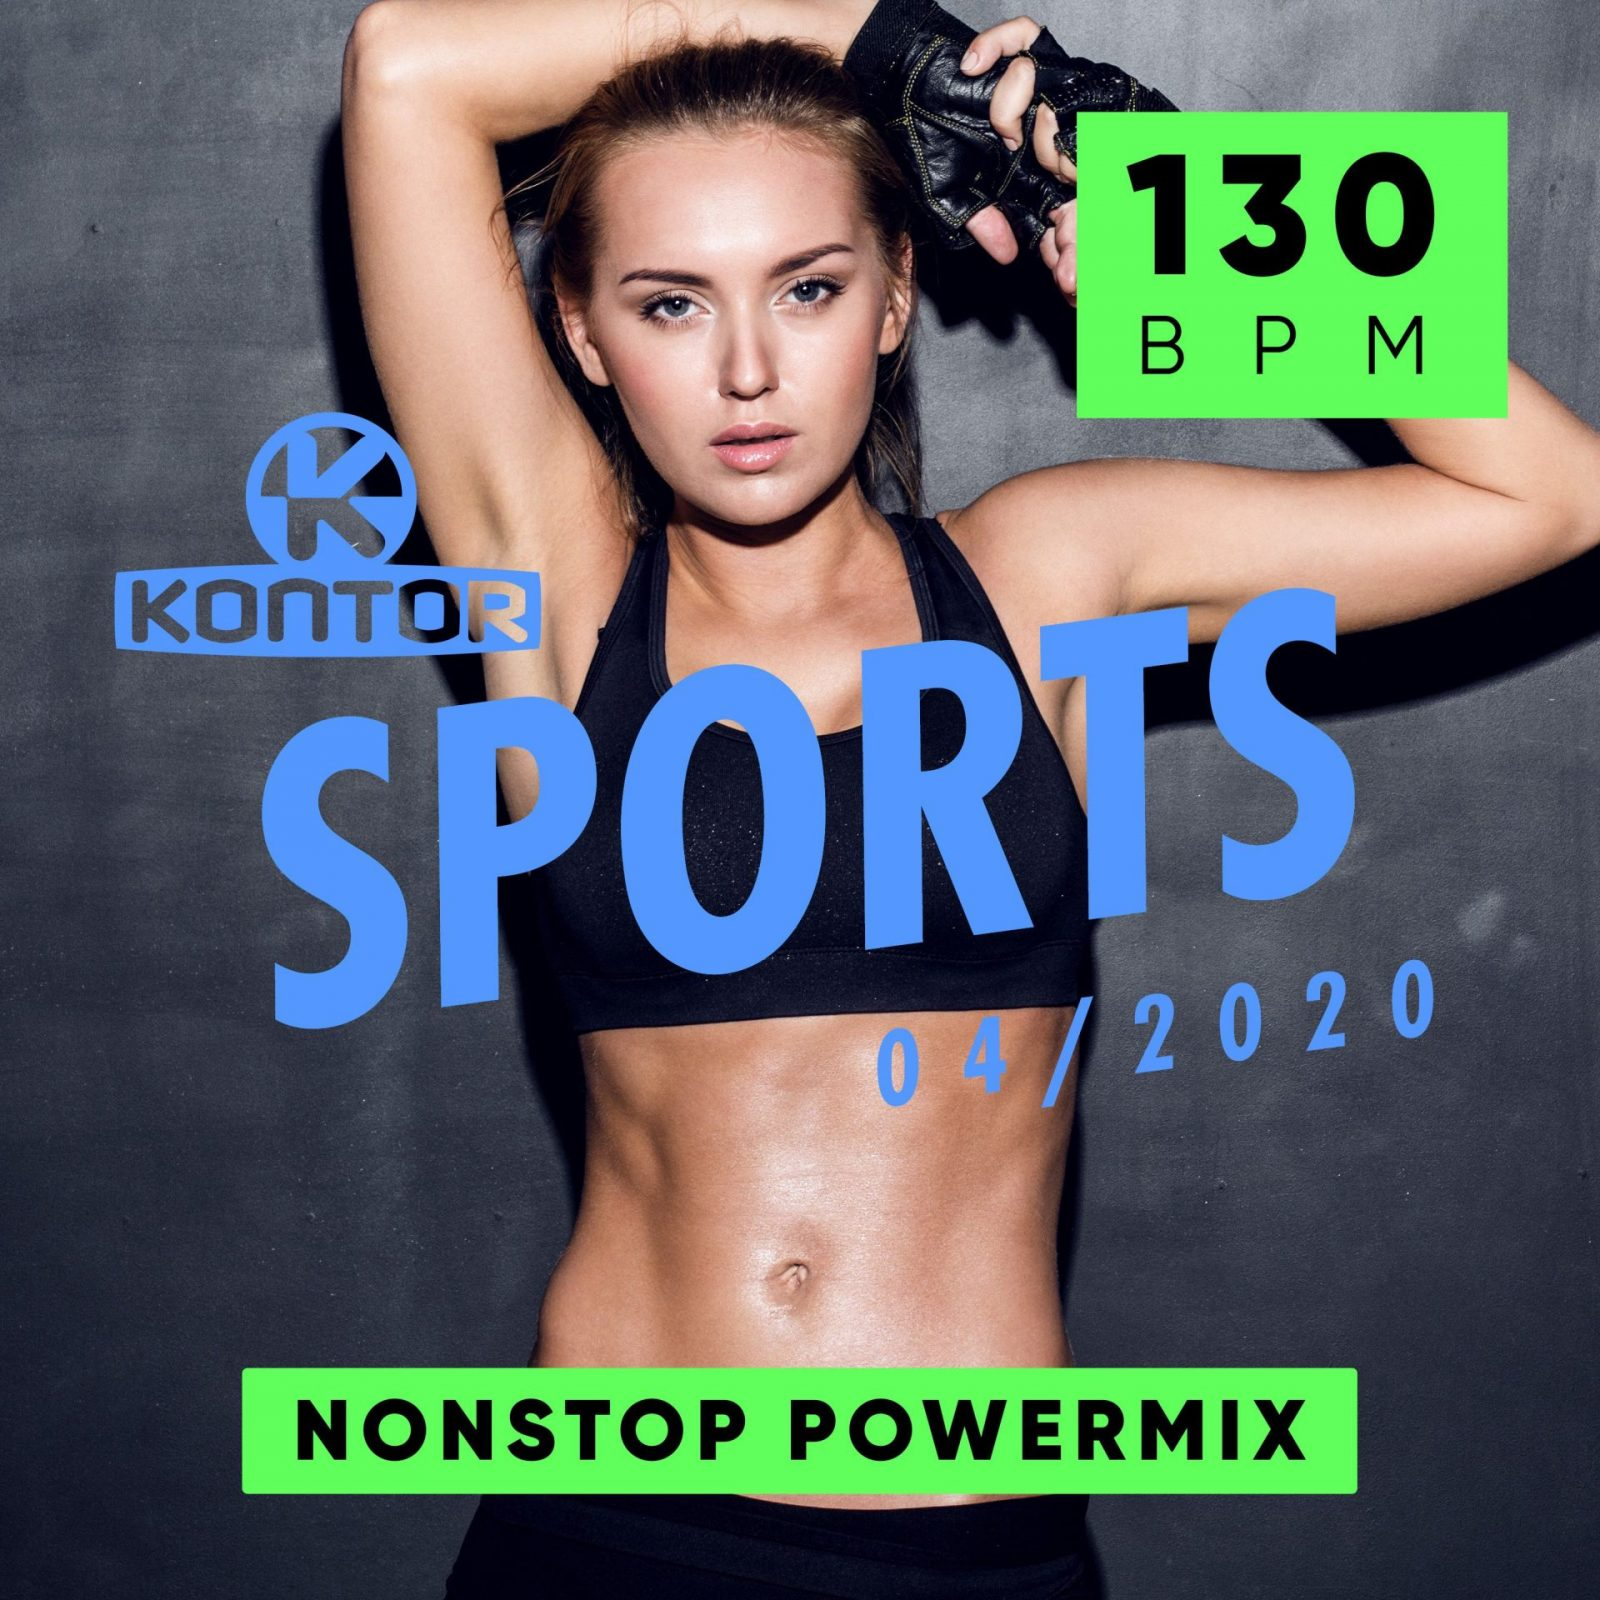 TRACKLIST KONTOR SPORTS 04/2020  – NONSTOP POWERMIX (130bpm)